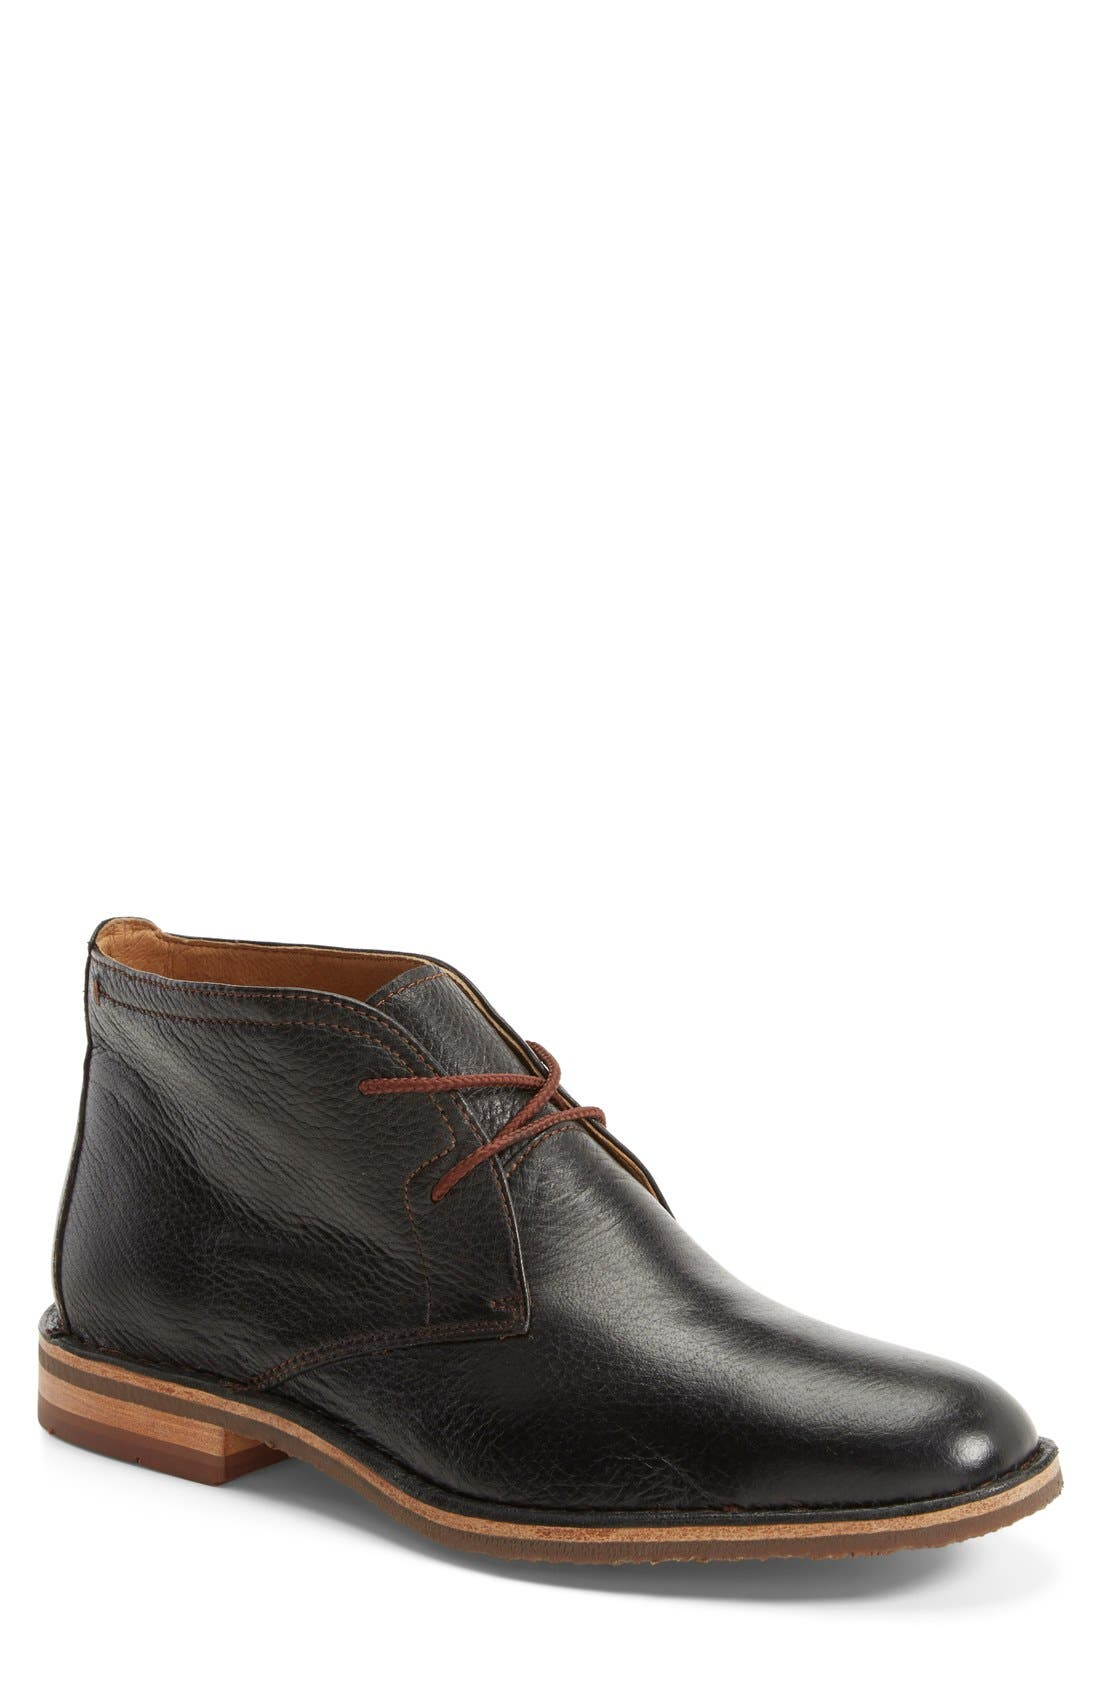 TRASK, 'Brady' Chukka Boot, Main thumbnail 1, color, BLACK NORWEGIAN ELK